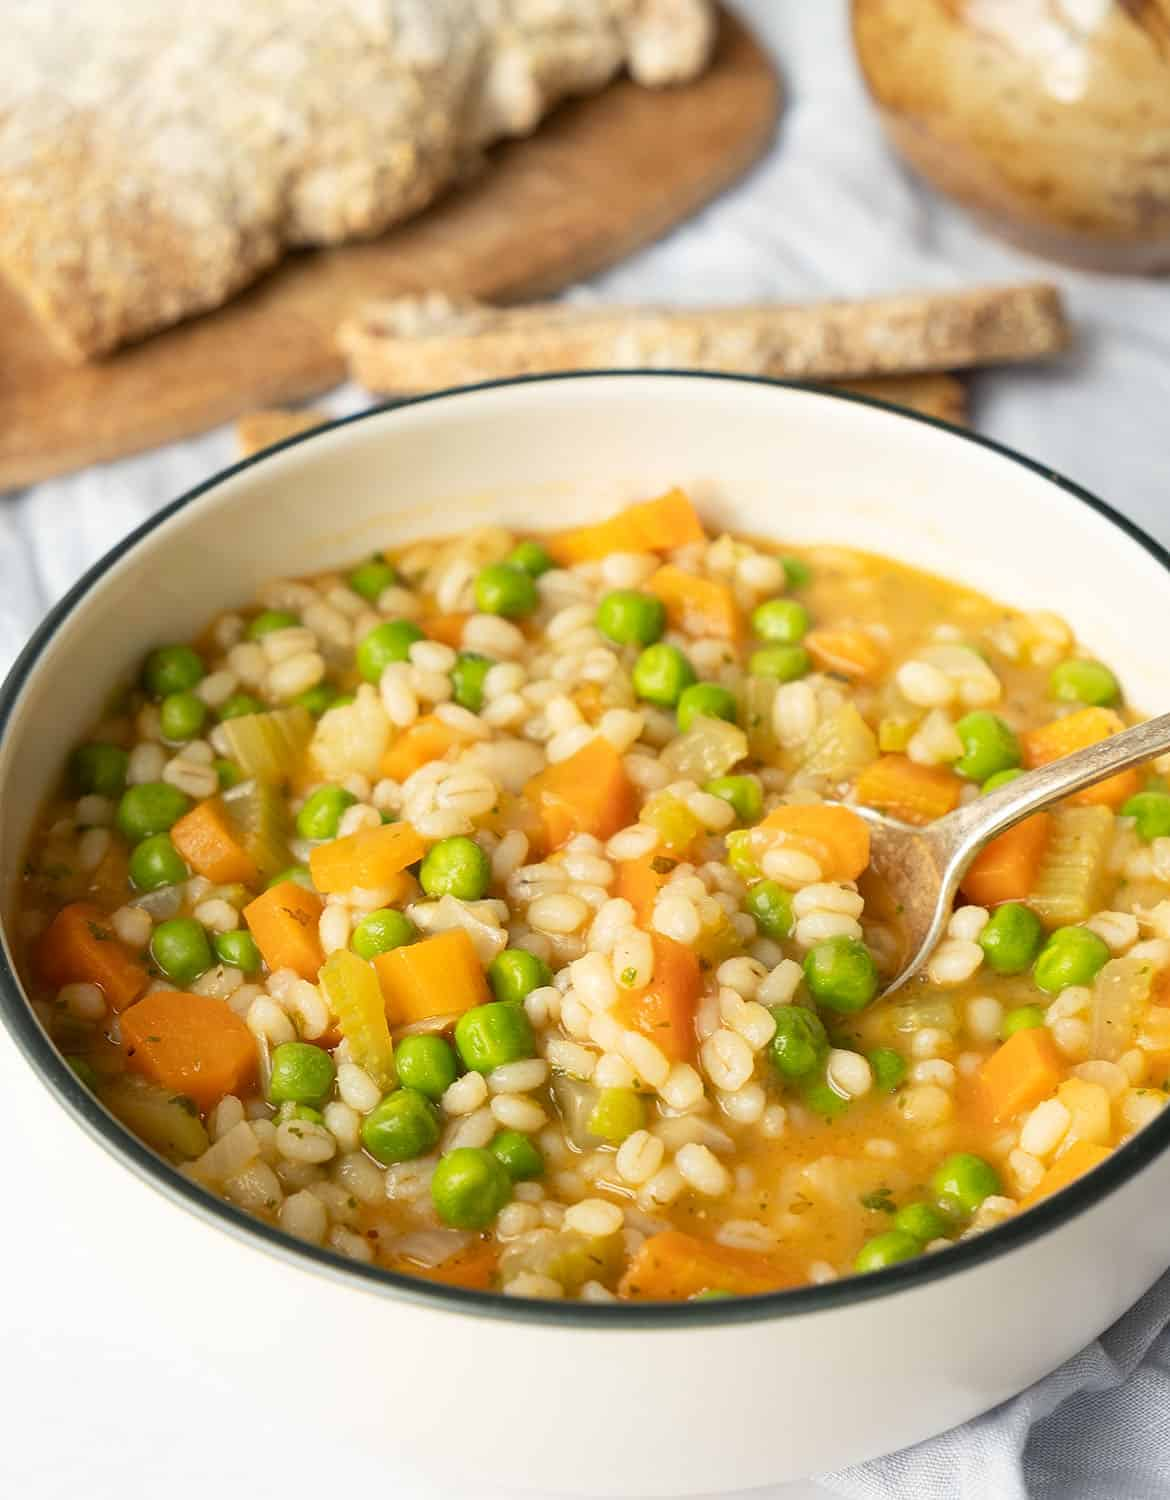 Vegetable barley in a white bowl with a spoon. Bread on the background.